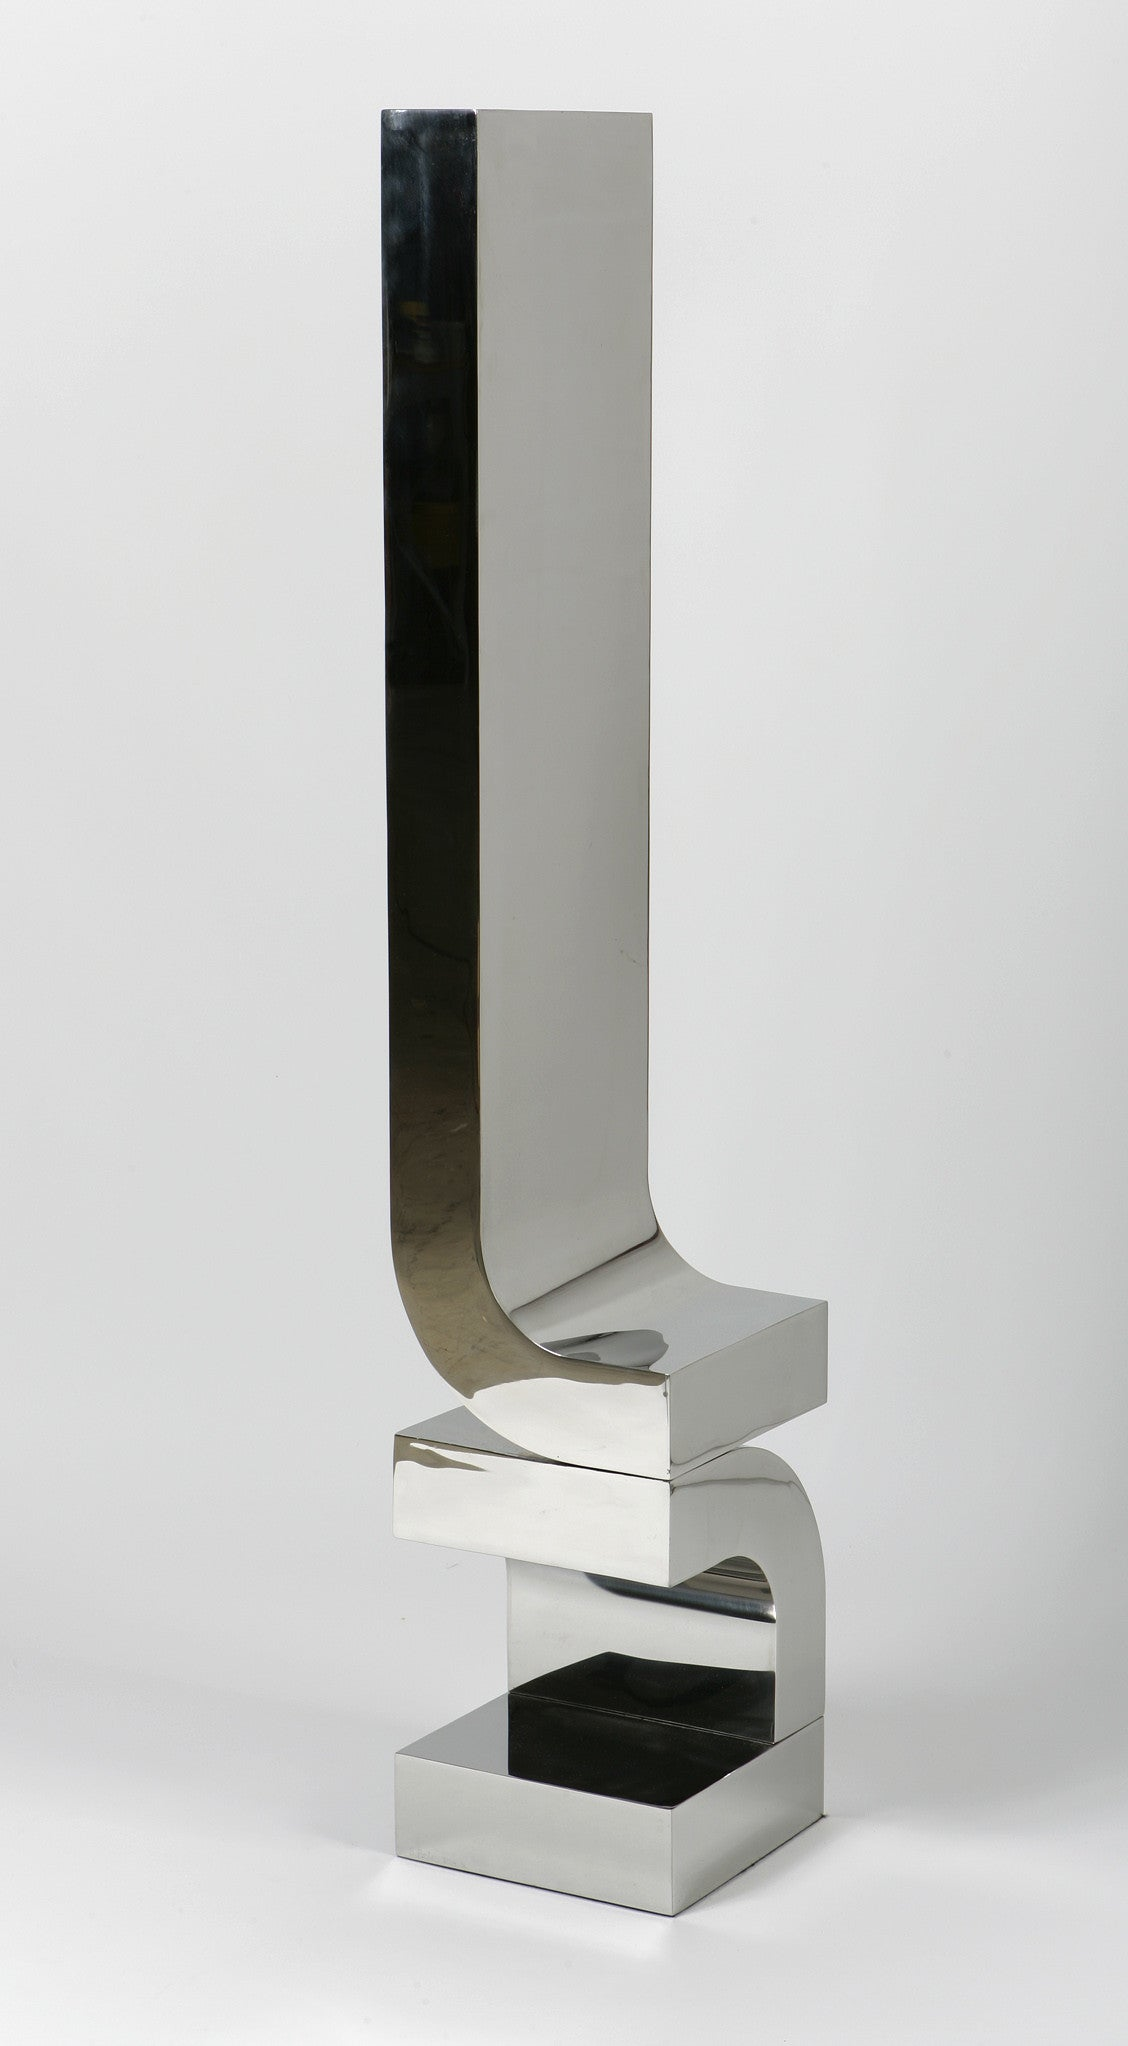 Series 4 #19 / 12 x 86 x 12 / stainless steel